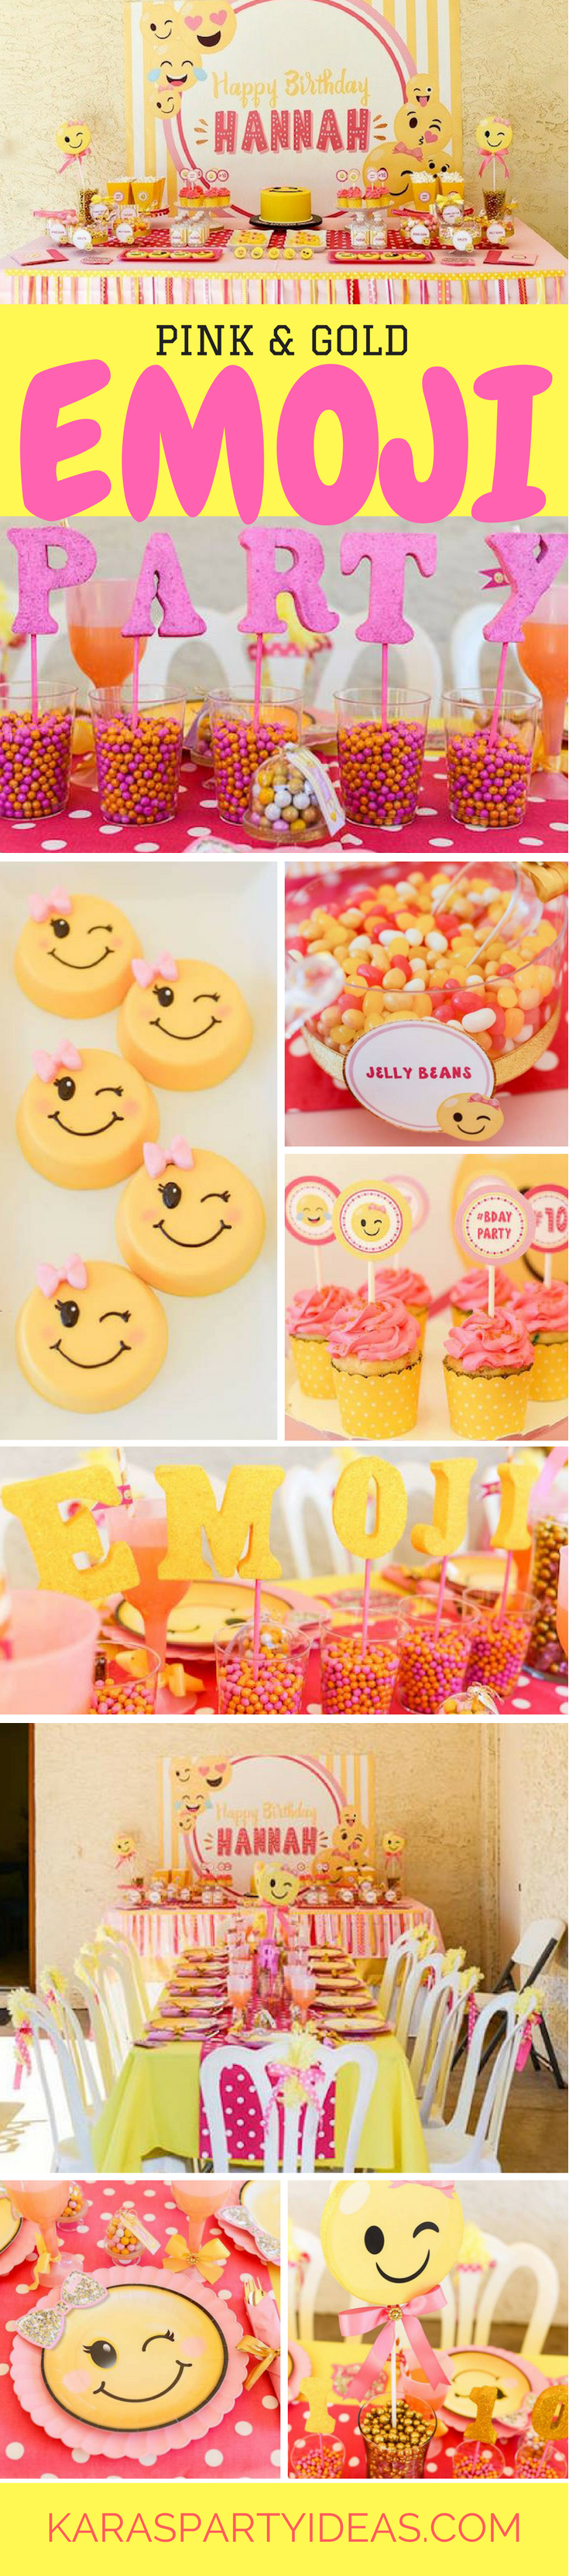 Pink and Gold Emoji Birthday Party via Kara's Party Ideas